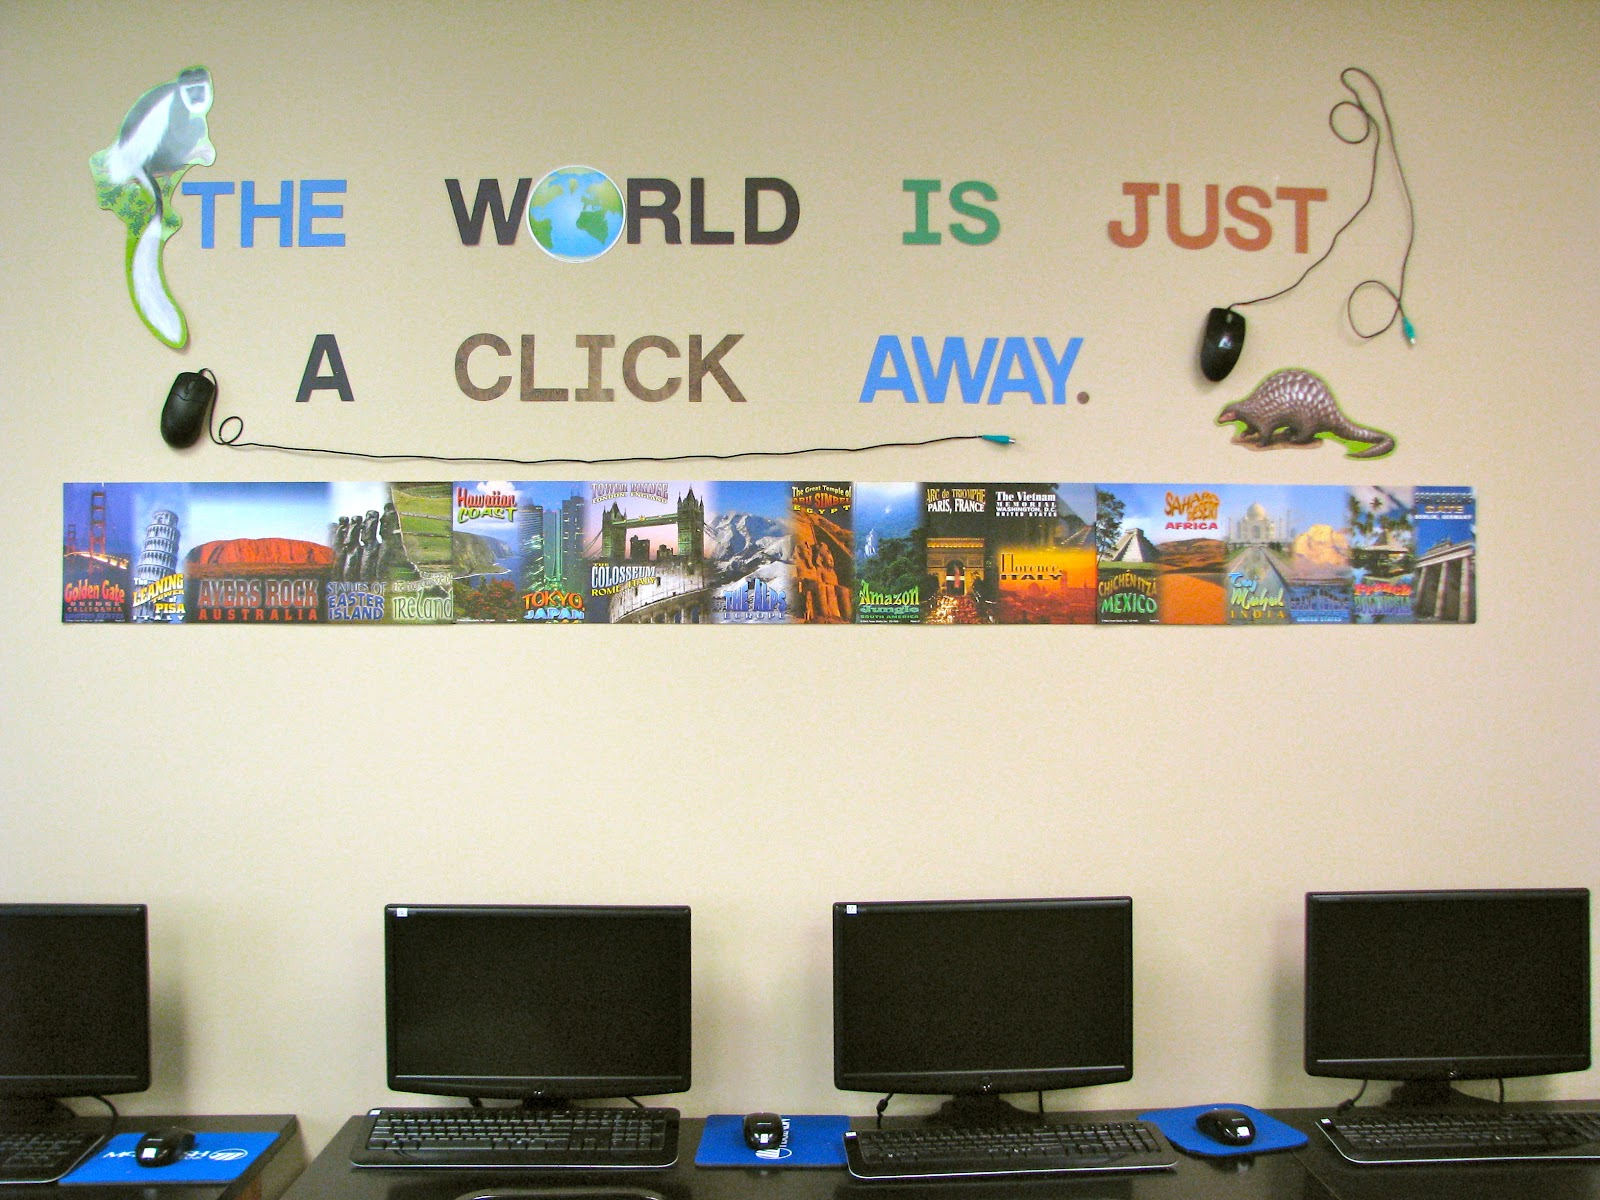 Computer Lab Decoration ~ Homemadeville your place for homemade inspiration